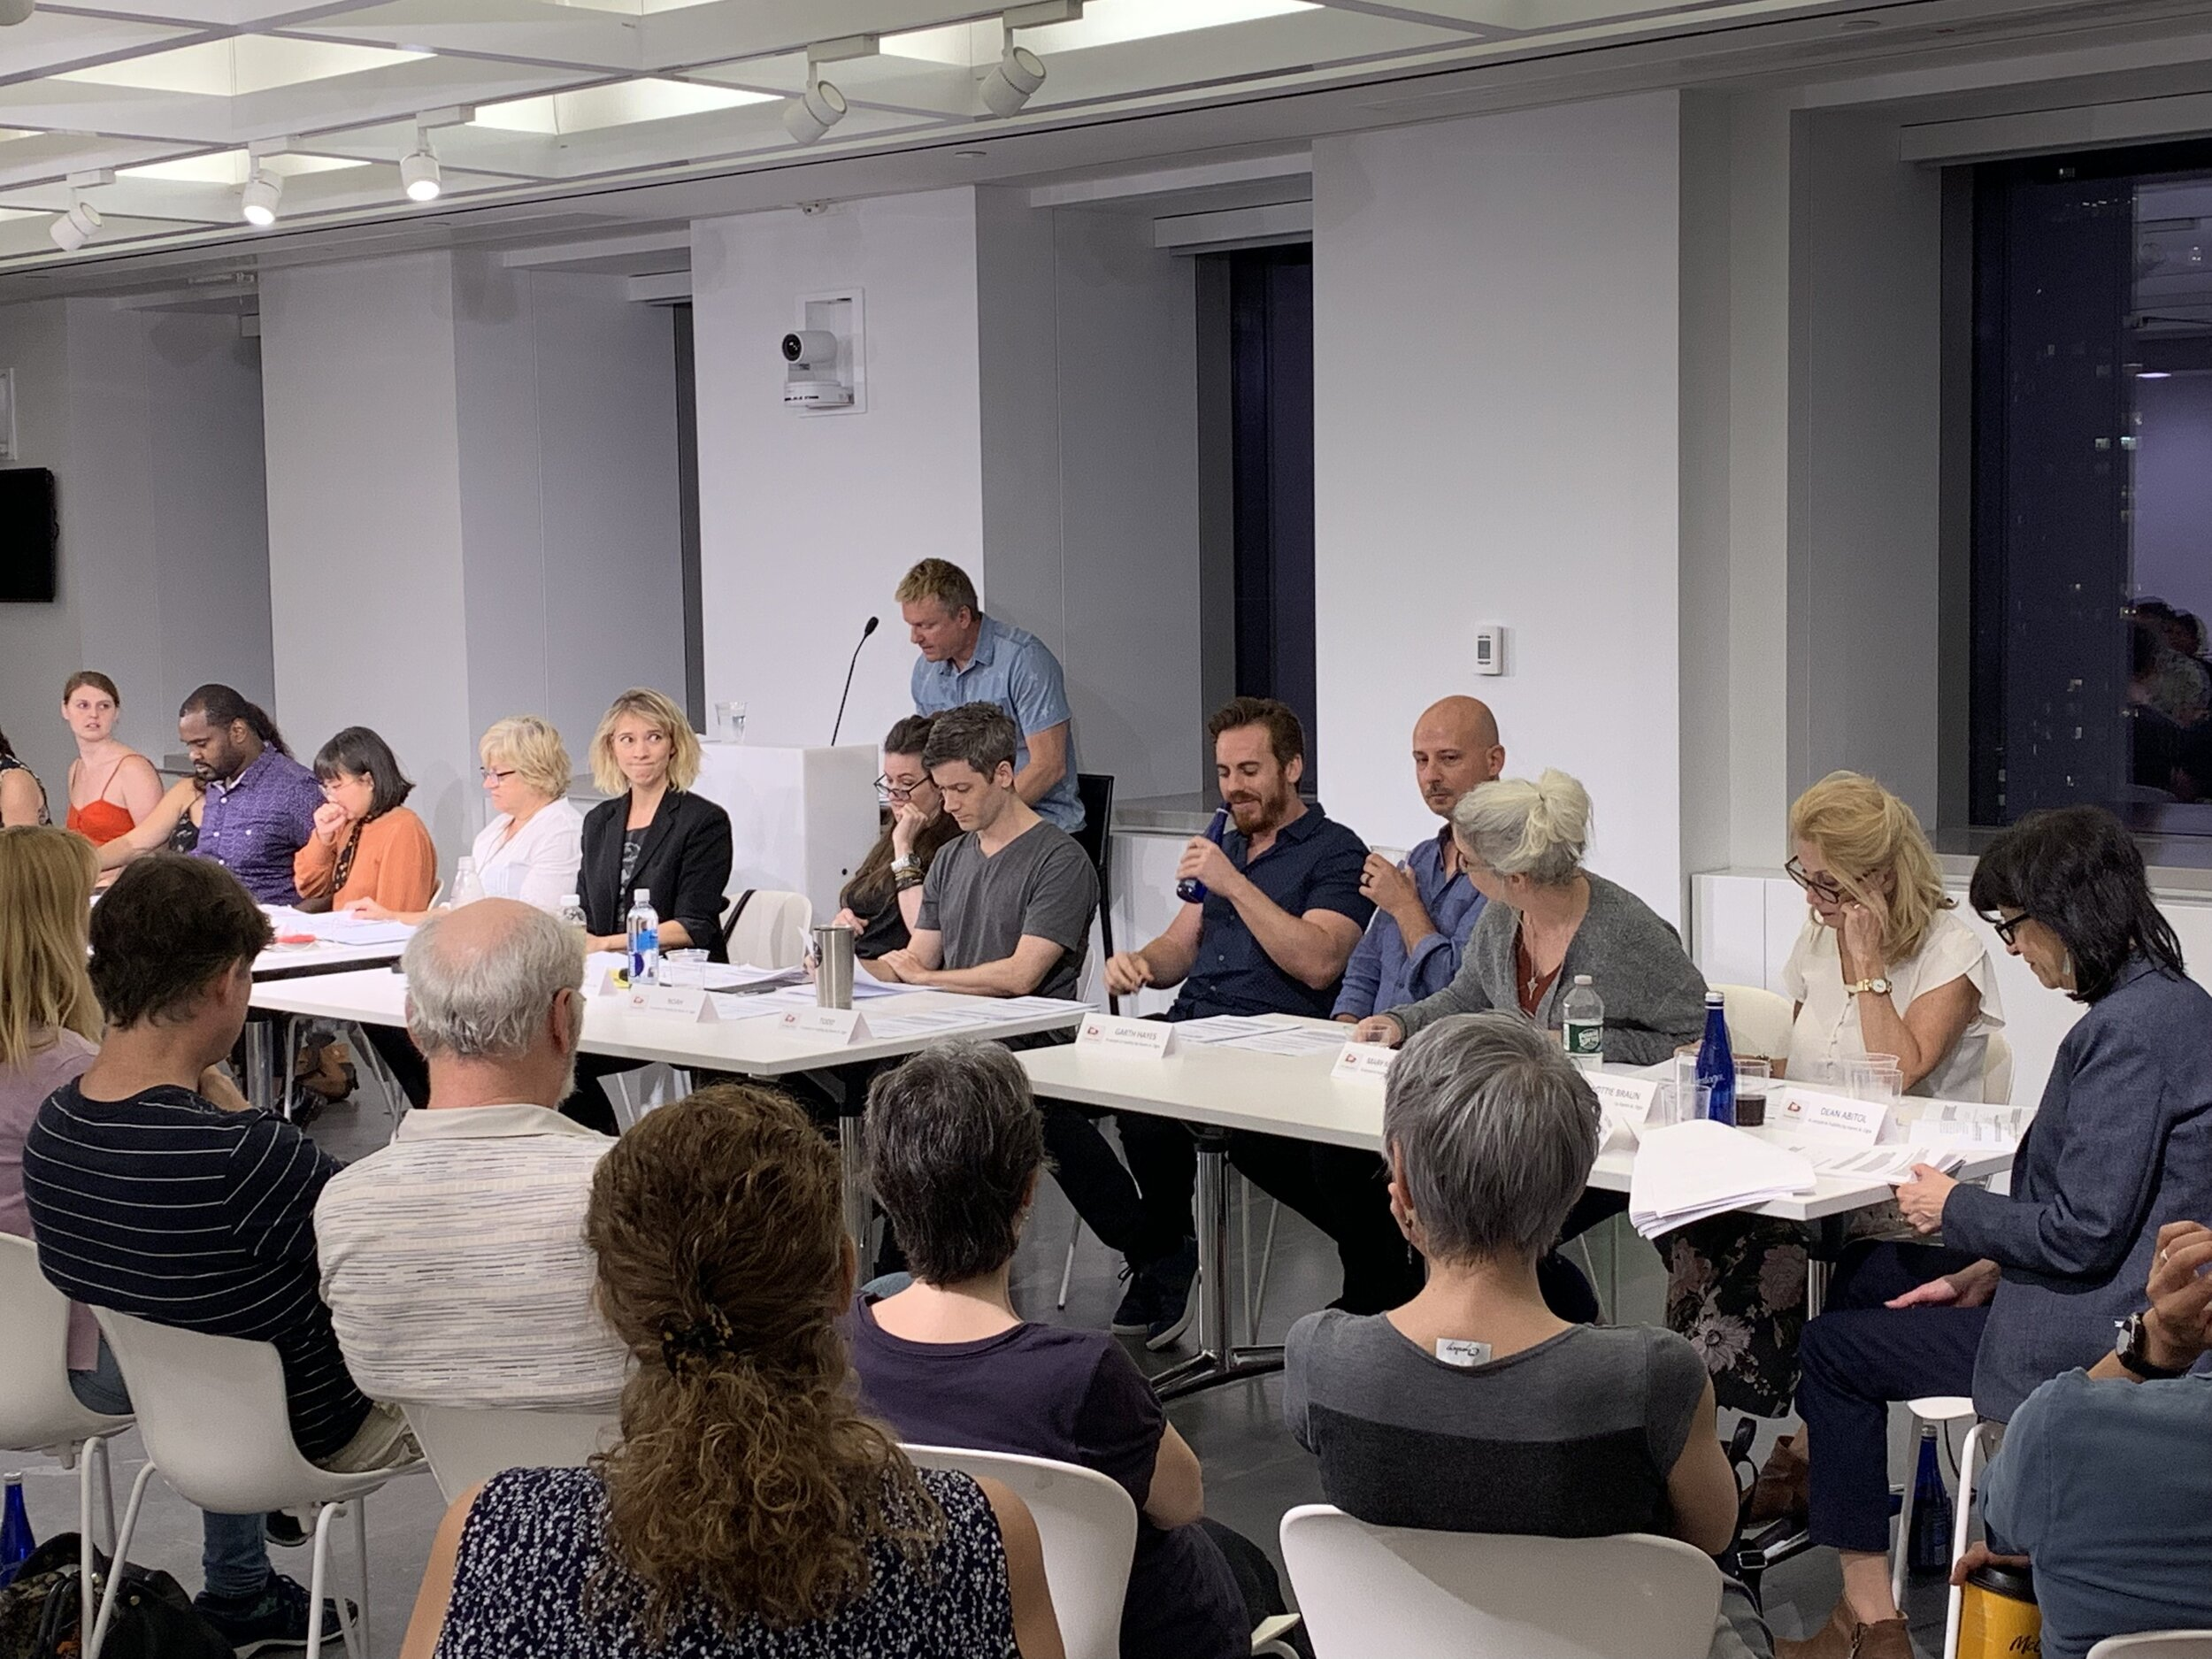 """The Drawing Board - On September 23rd, Derek Nicoletto acted in the table read of Karen A. Ogle's new pilot, """"A Lesson in Futility,"""" hosted by The Drawing Board. Derek read for Garth, an a-hole acting teacher."""